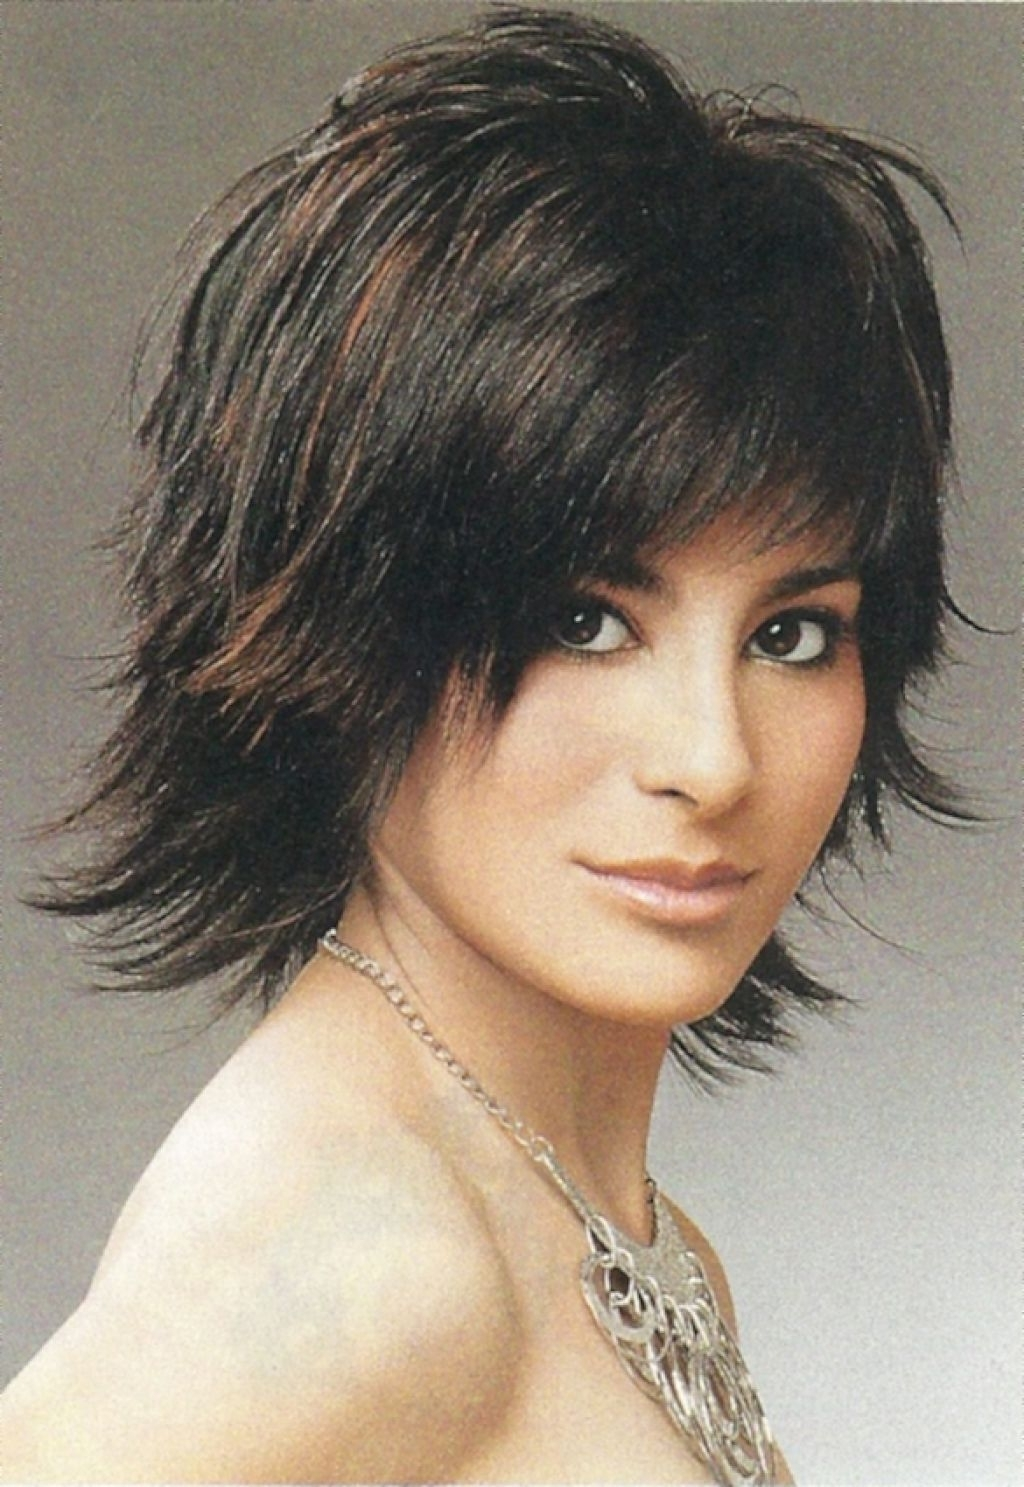 Messy Shaggy Hairstyles For Women (View 8 of 15)